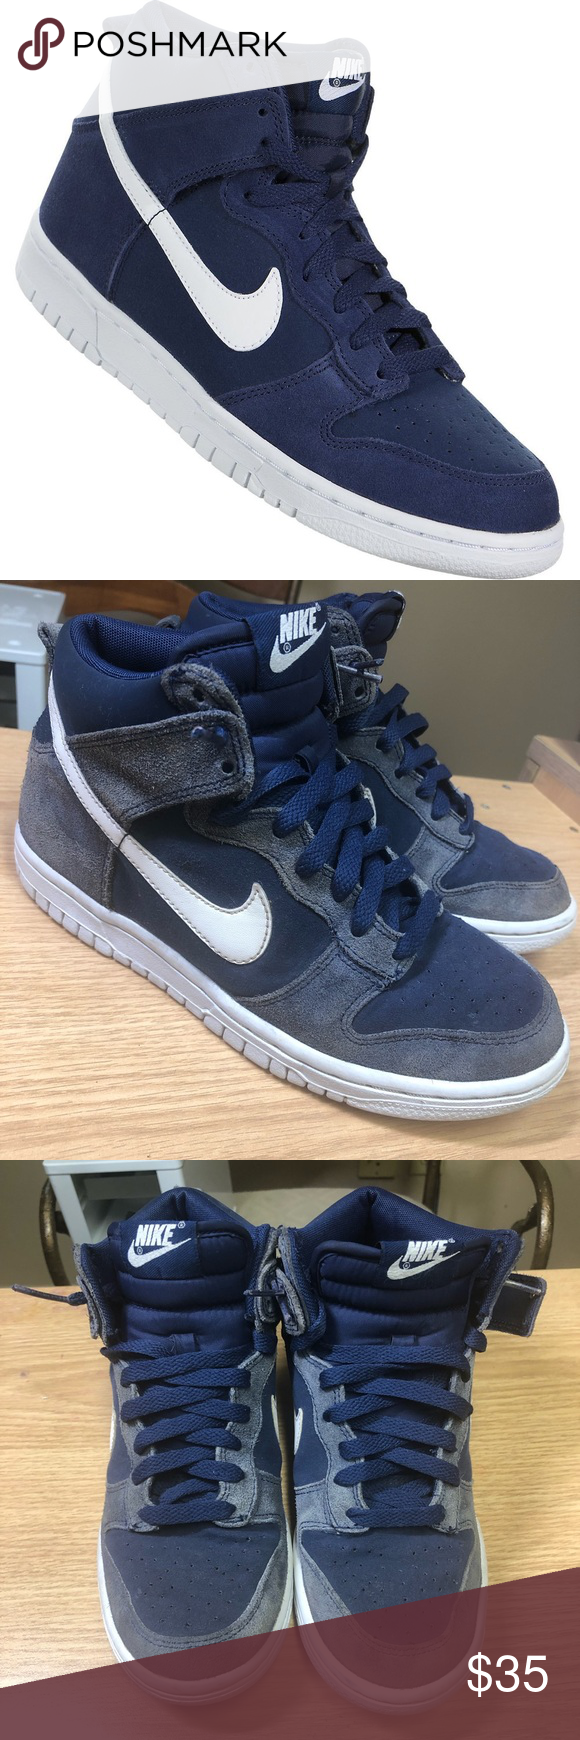 308319-406 Binary Blue//White NEW Size 7Y Boys Nike Dunk High GS